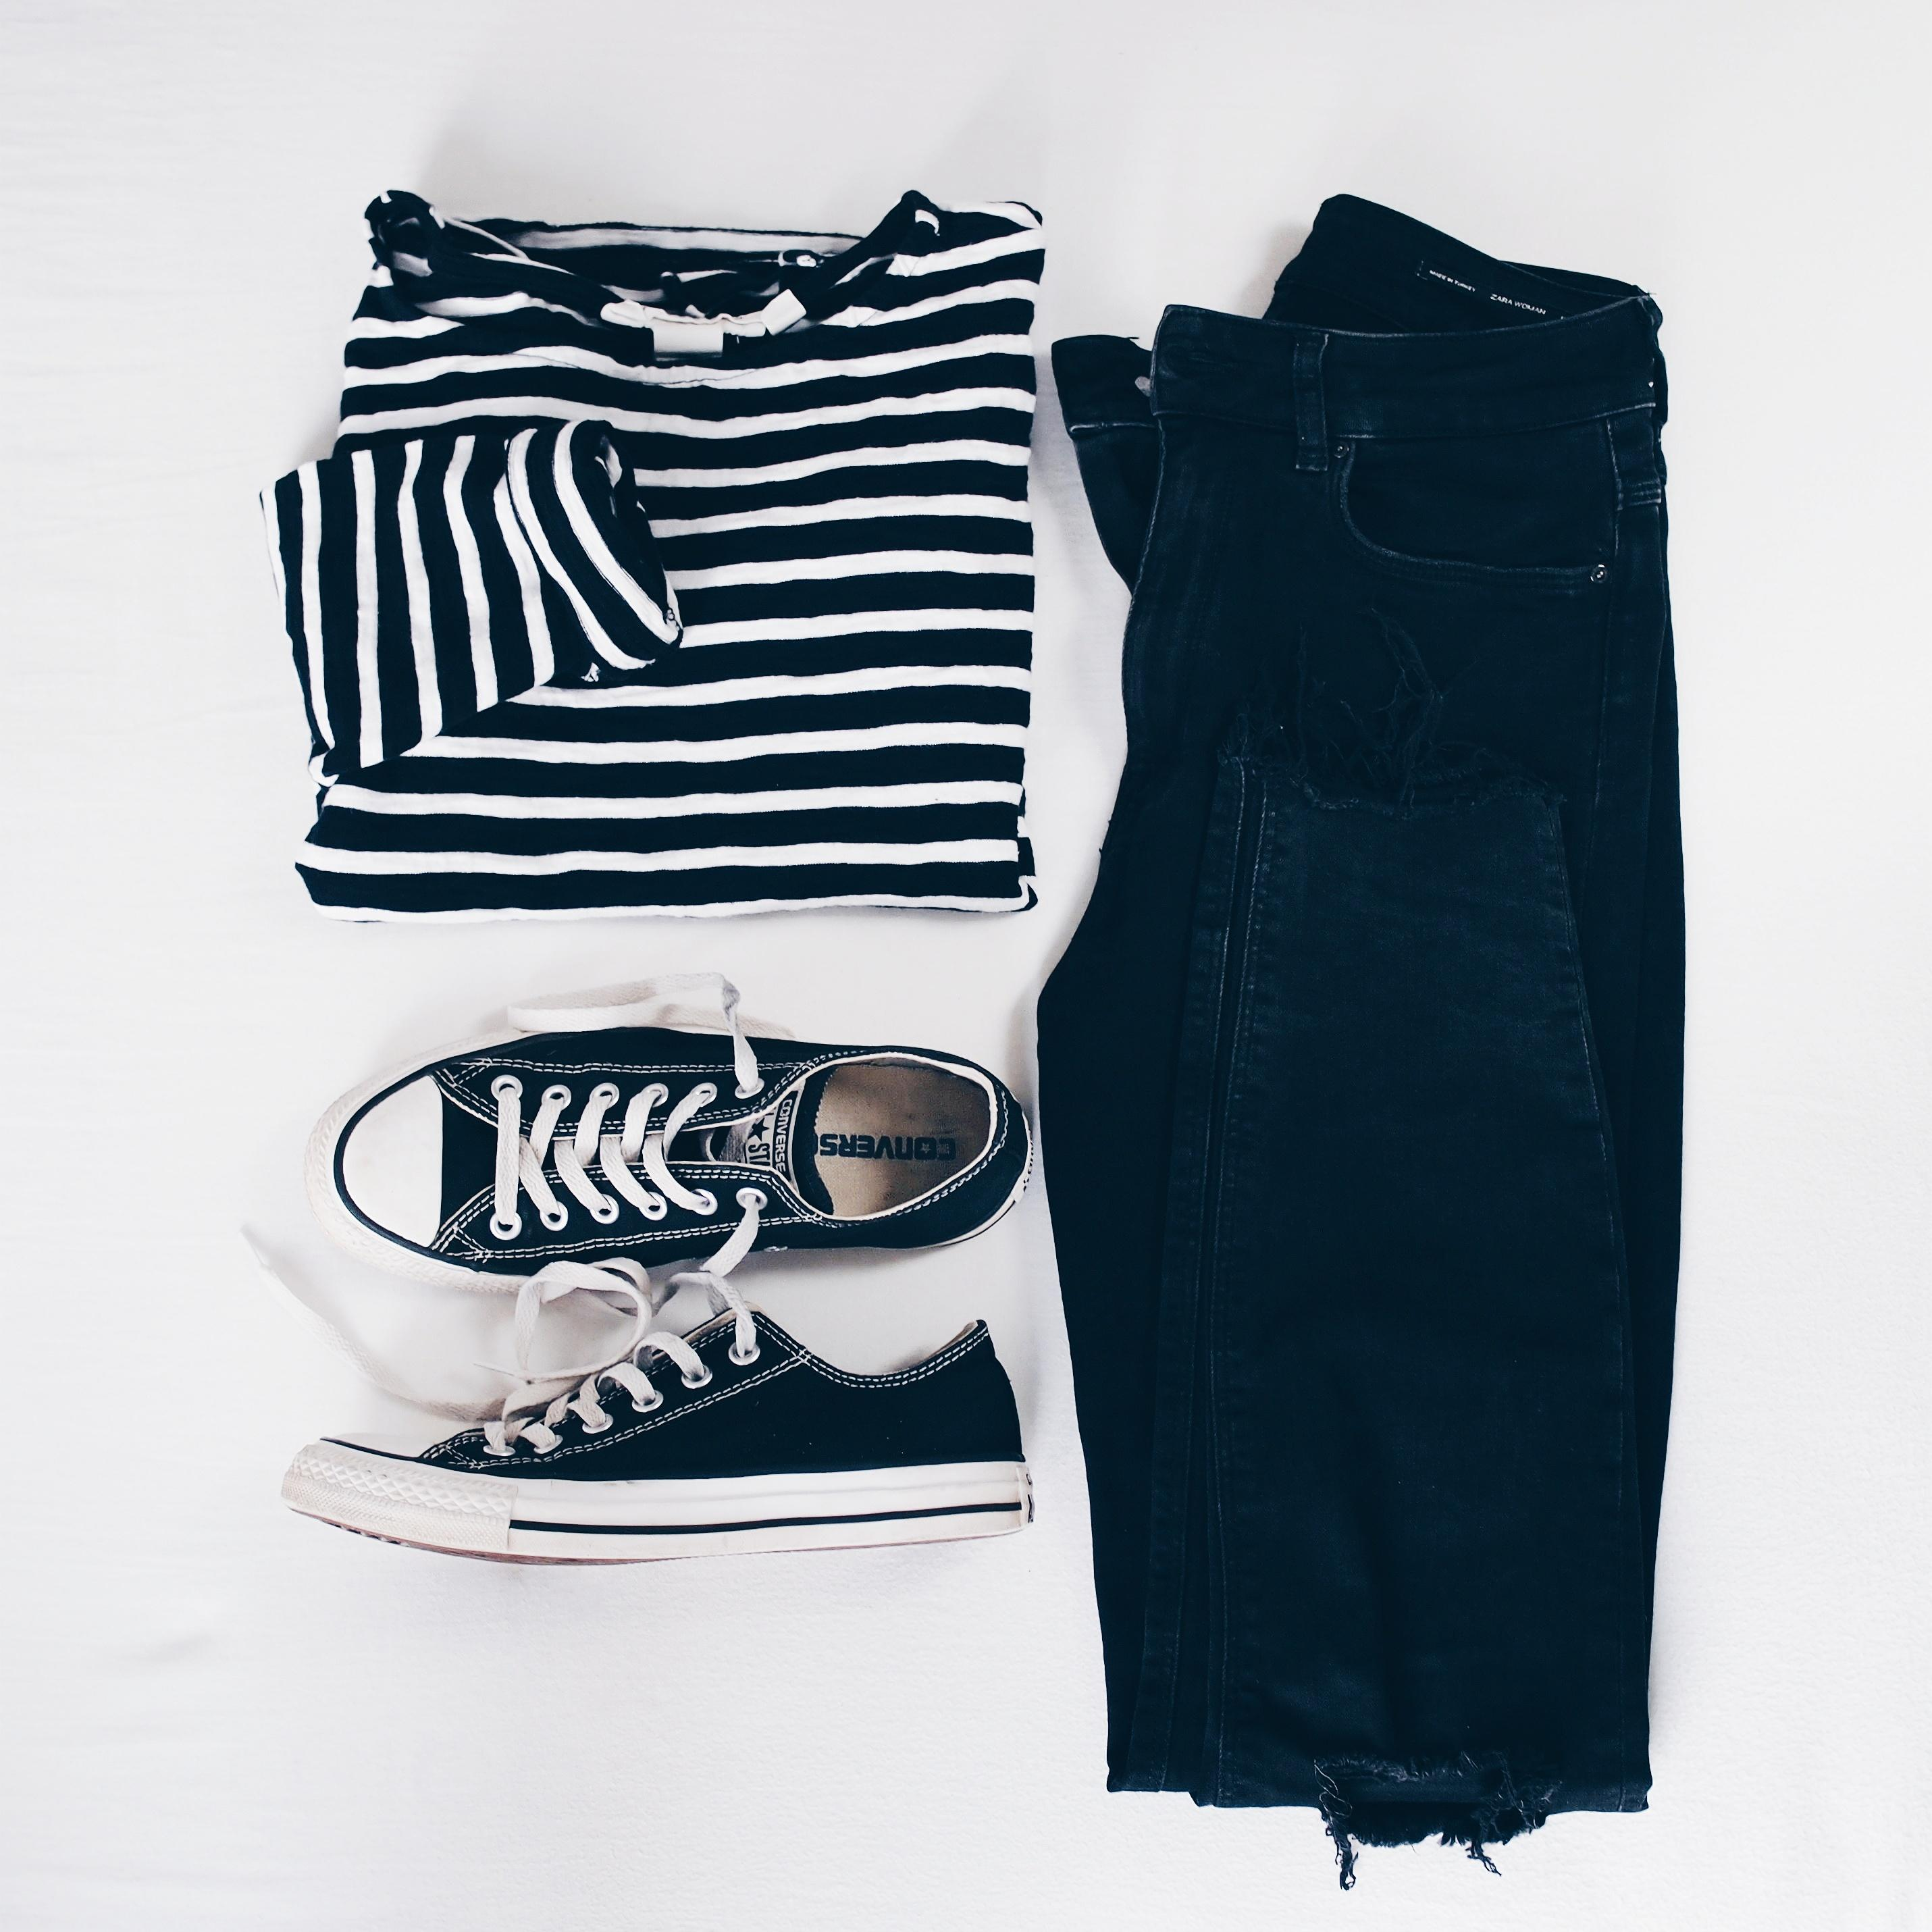 Black & white 🗯️ #ootd #fashion #flatlay #fashioninspo